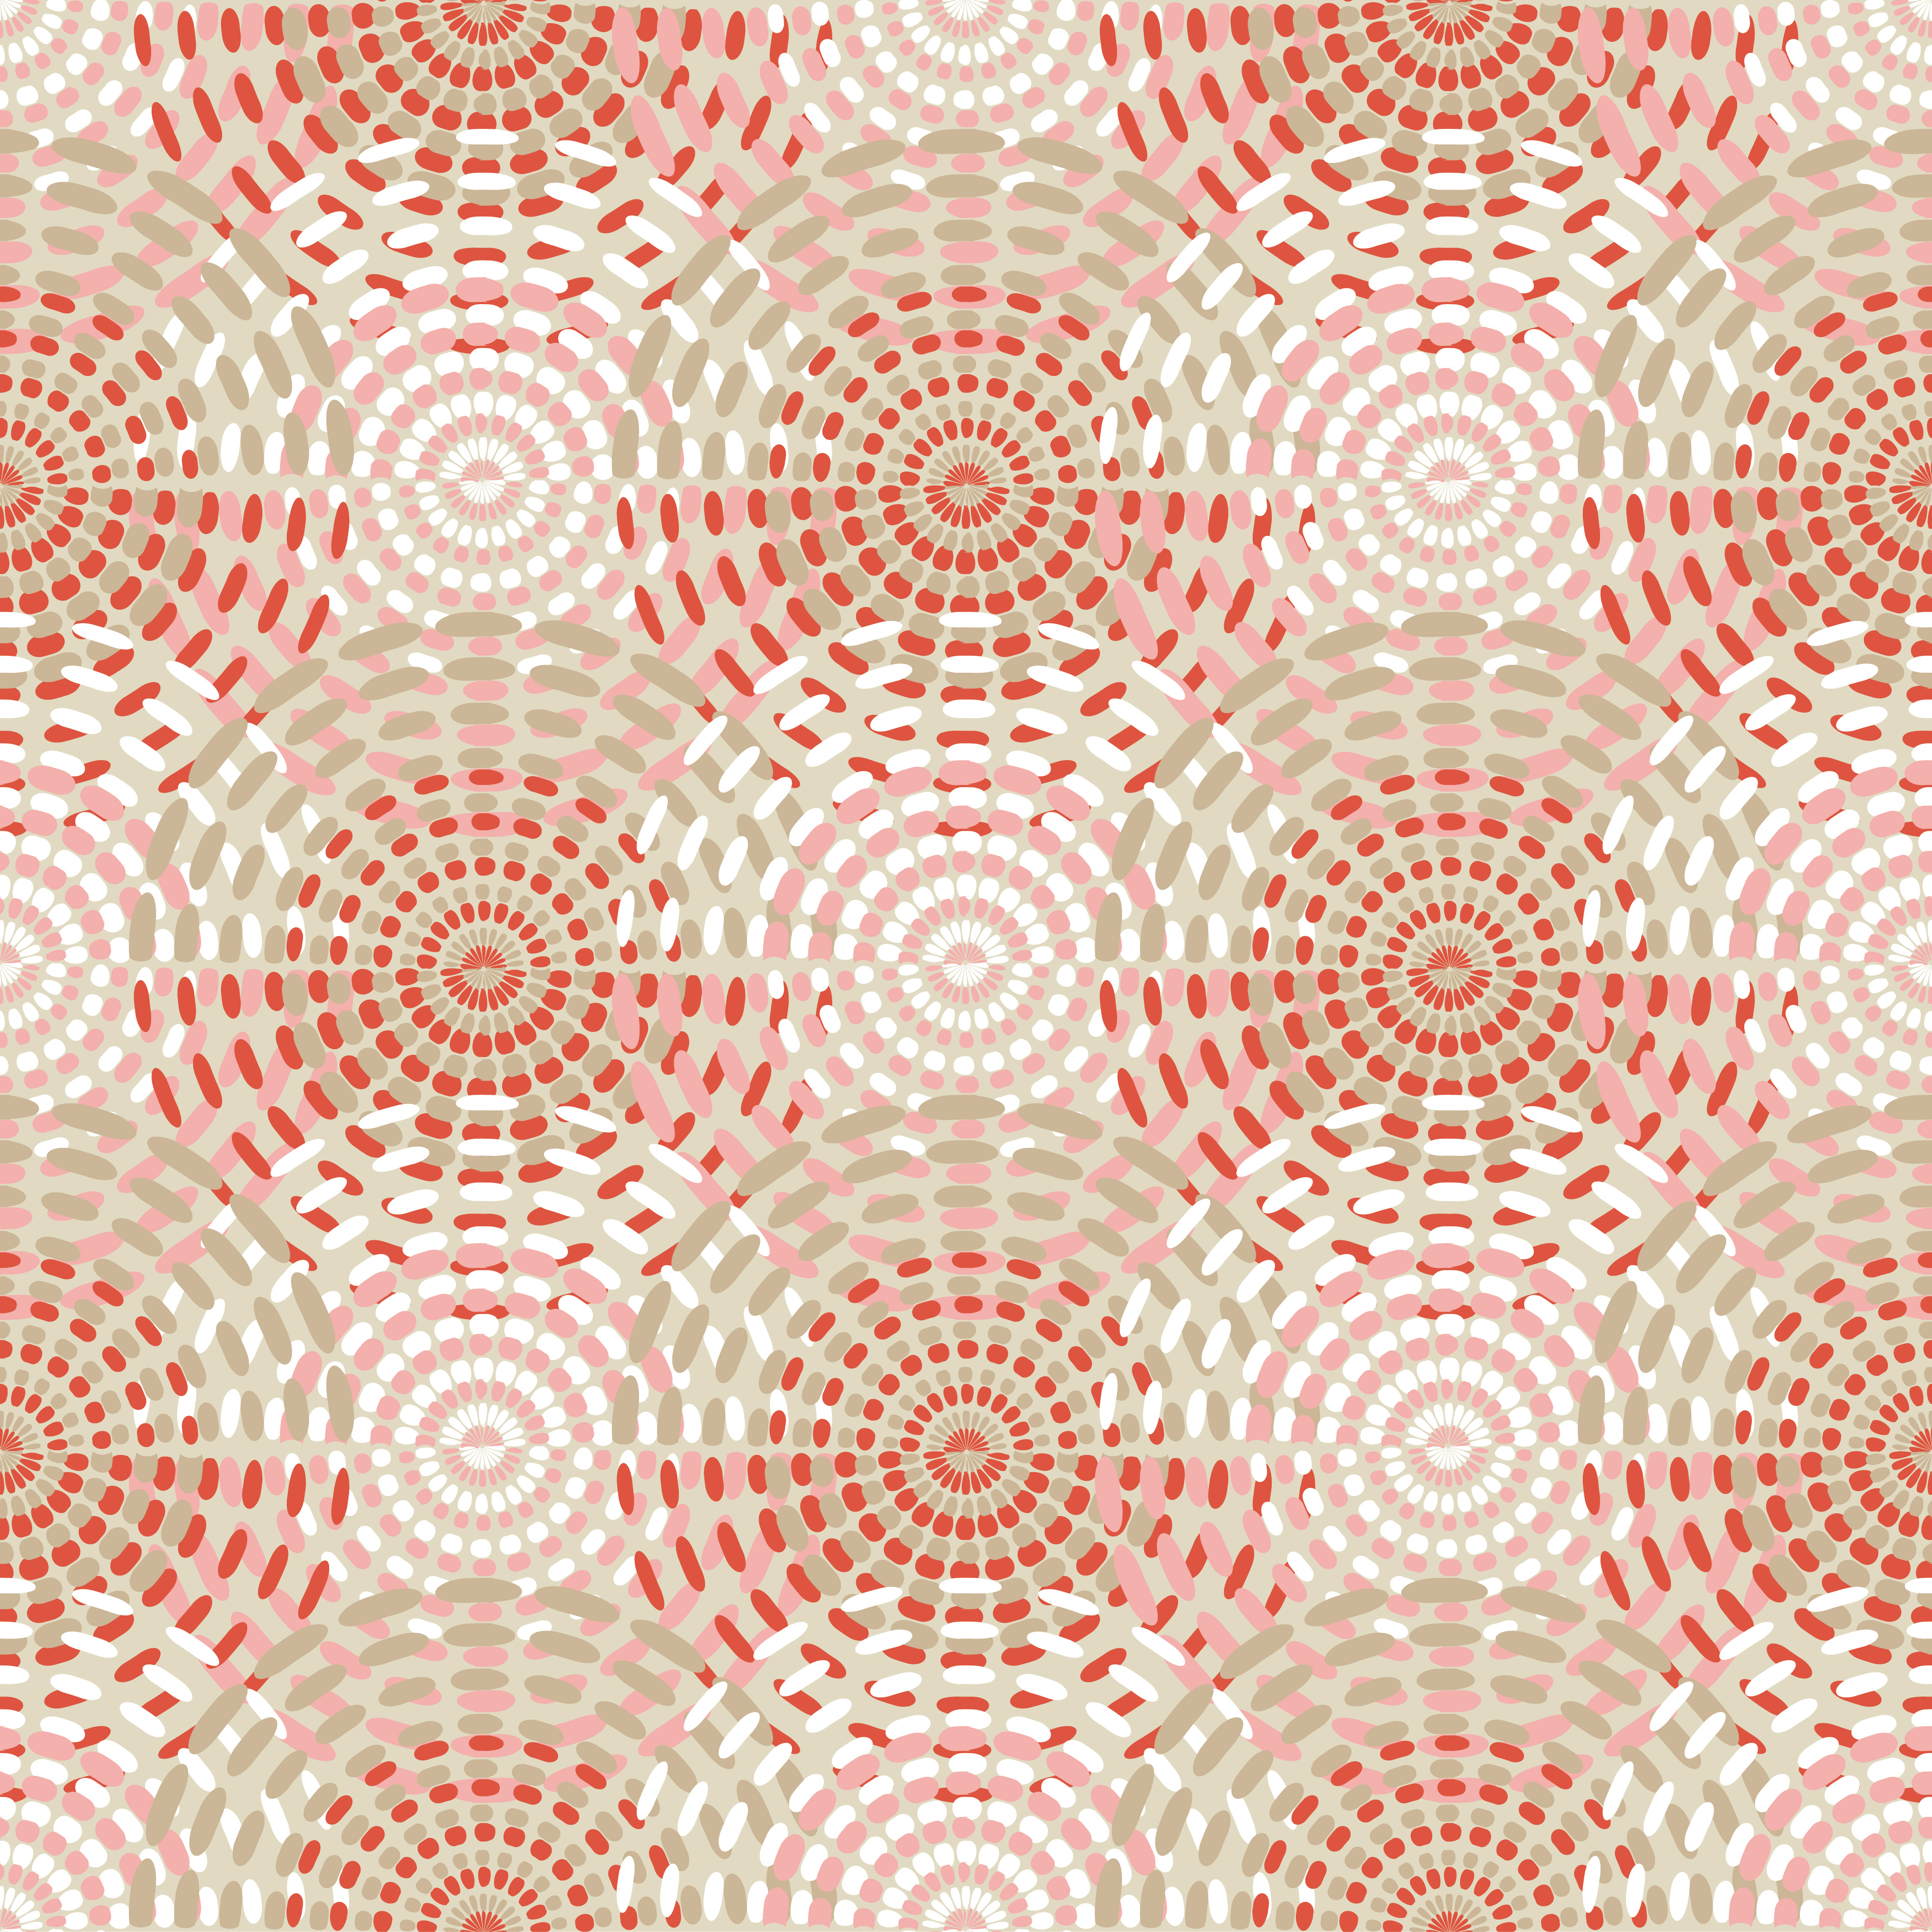 Polka dot seamless pattern. Dotted circle. Vector illustration. Textile rapport.  example image 1